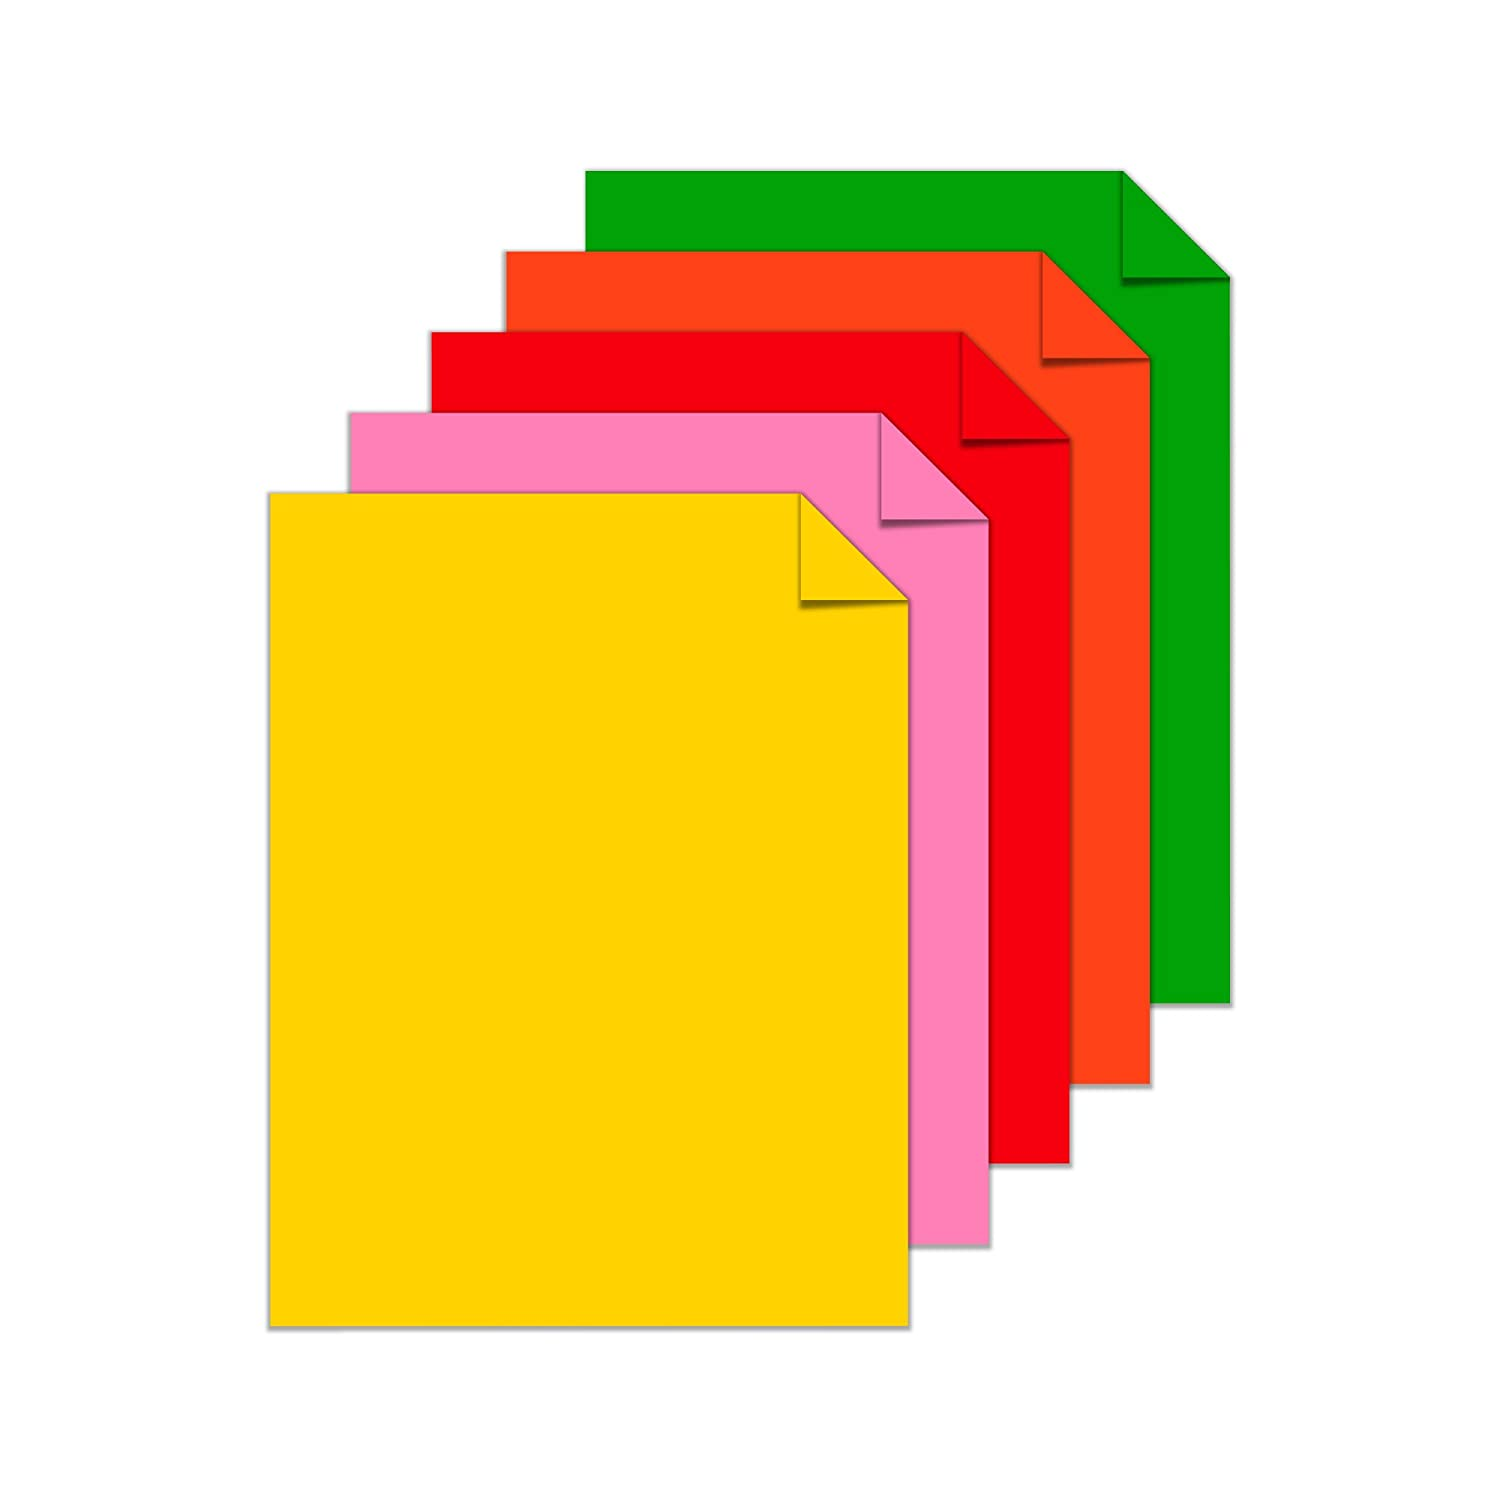 Multi color cardstock paper - Amazon Com Neenah Paper Colored Cardstock 8 5 X 11 65 Lb 176 Gsm Vintage 5 Color Assortment 250 Sheets 21003 Office Products